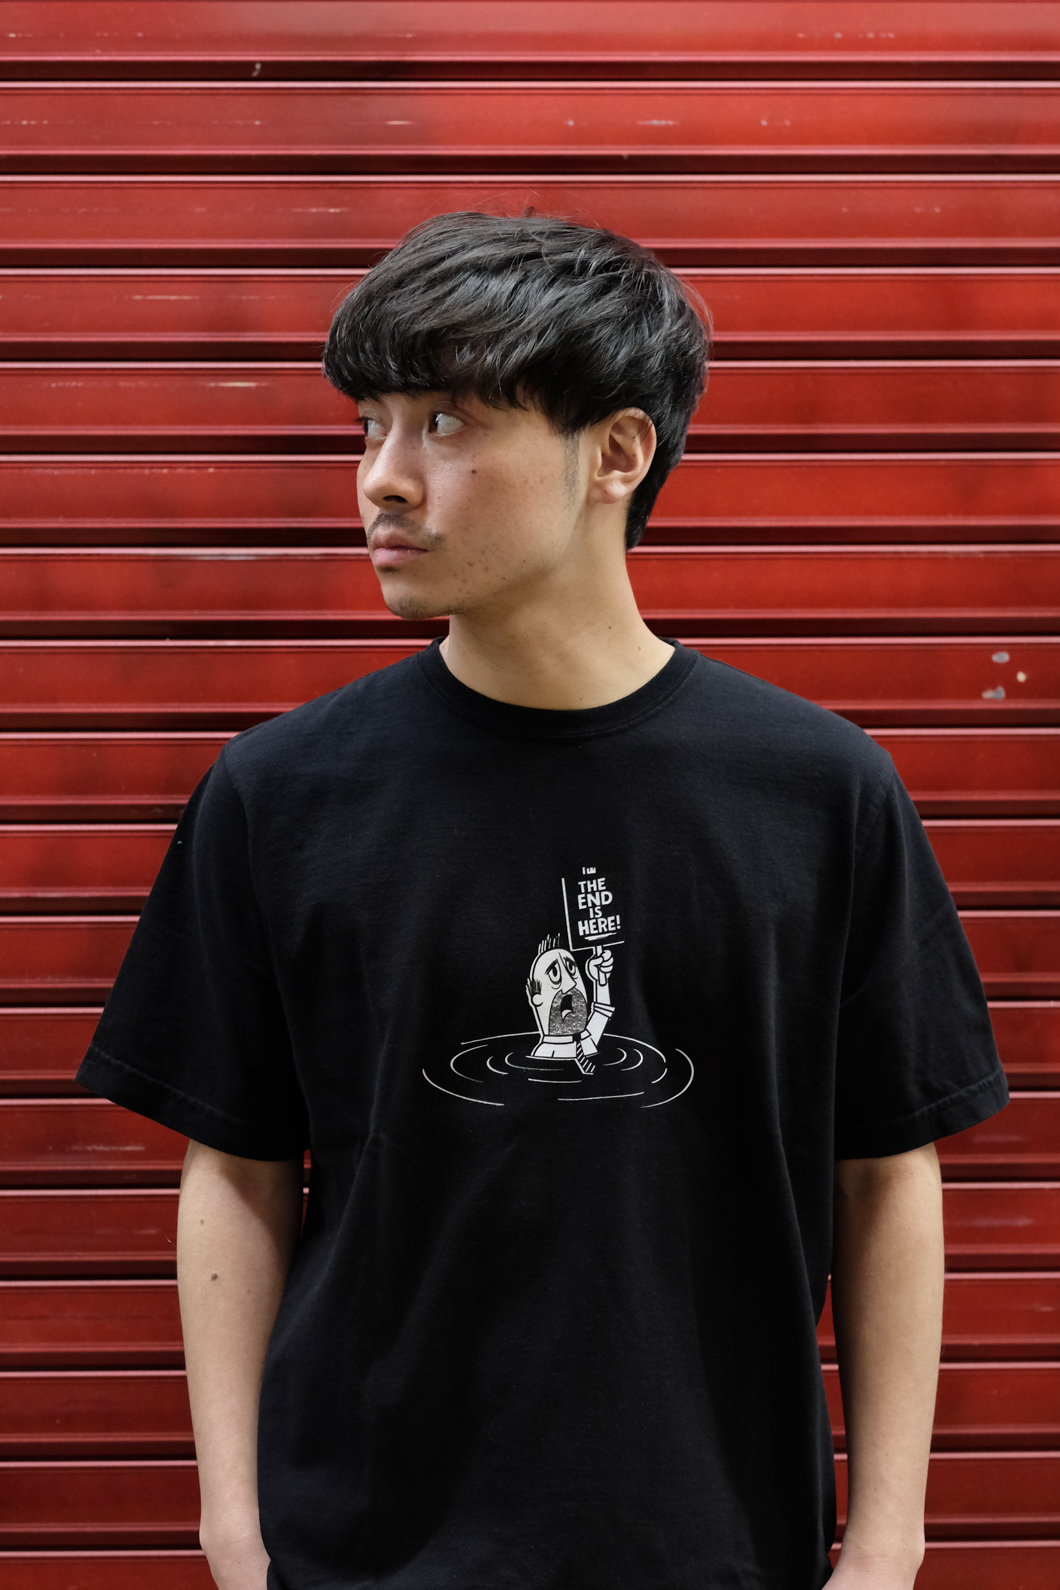 【RAISED BY WOLVES/レイズドバイウルブス】THE END IS HERE TEE Tシャツ / BLACK